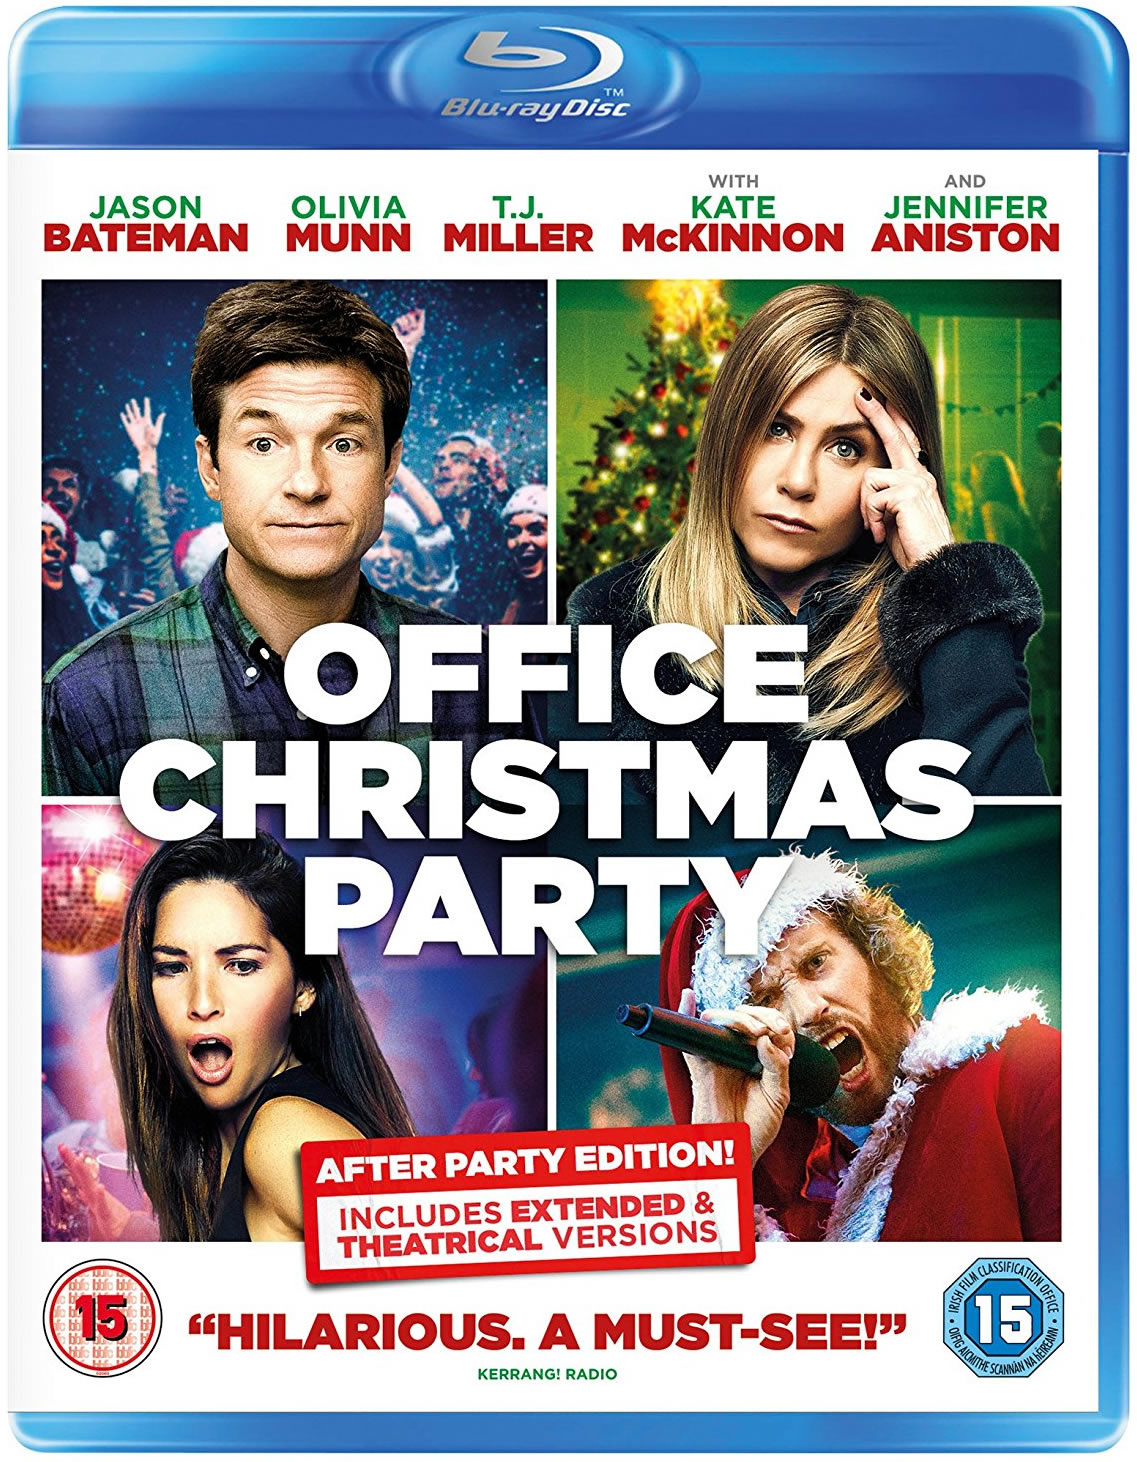 Office Christmas Party on Blu-ray - The DVDfever Review - DVDfever.co.uk